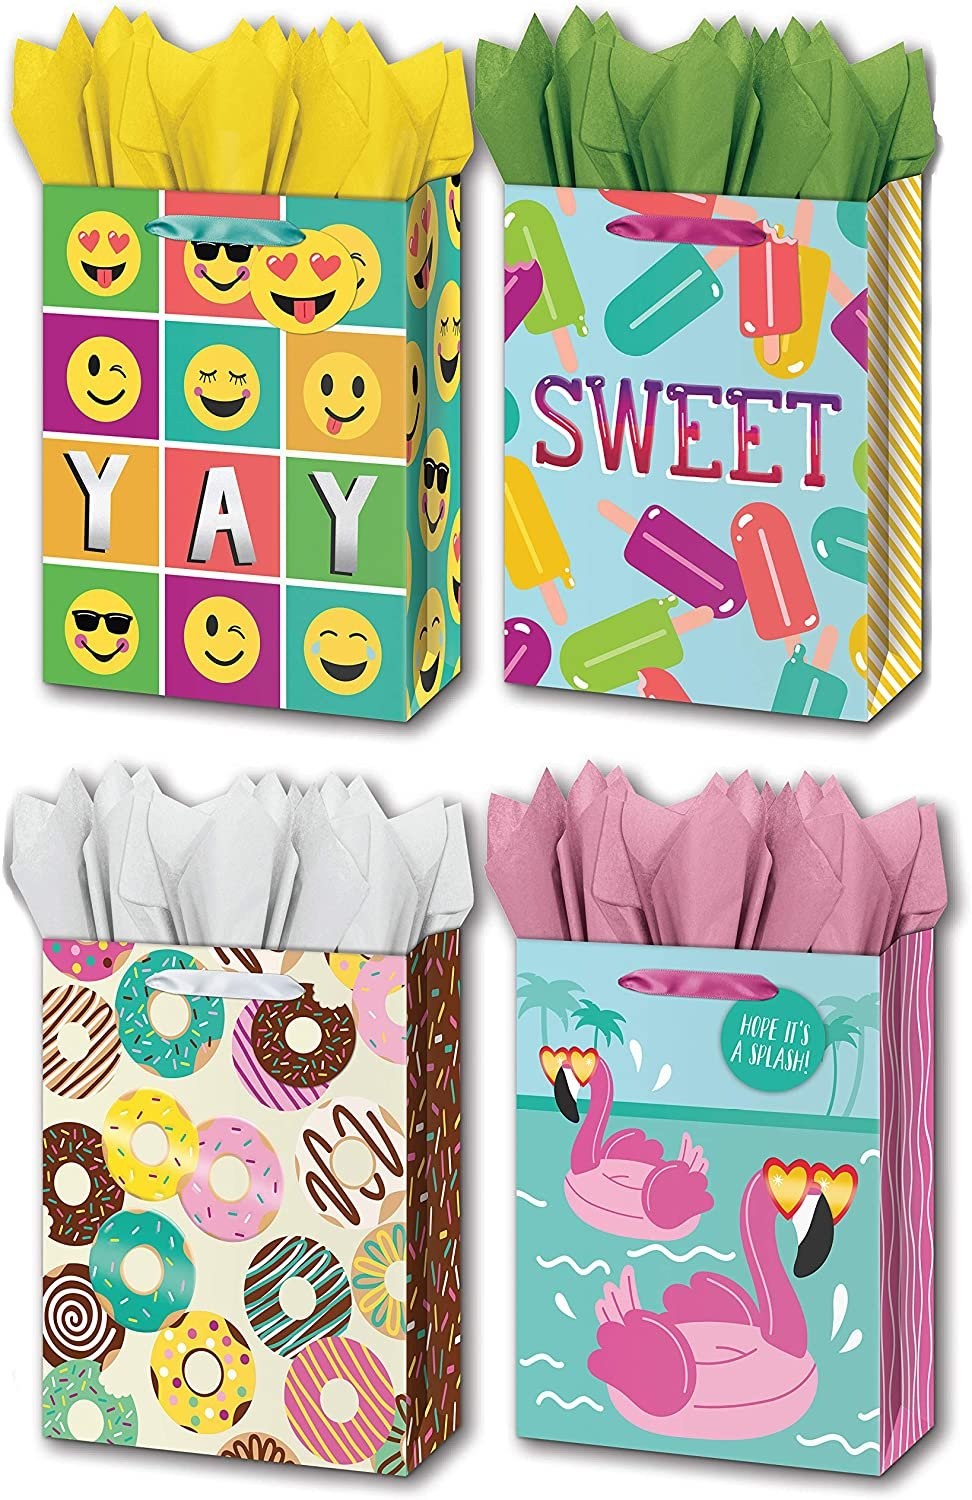 "B-THERE Bundle of 4 Large 10"" x 12"" x 5"" Gift Bags with Tags and Tissue for Men, Women, Girls and Boys for Birthday Party or Special Occasion"